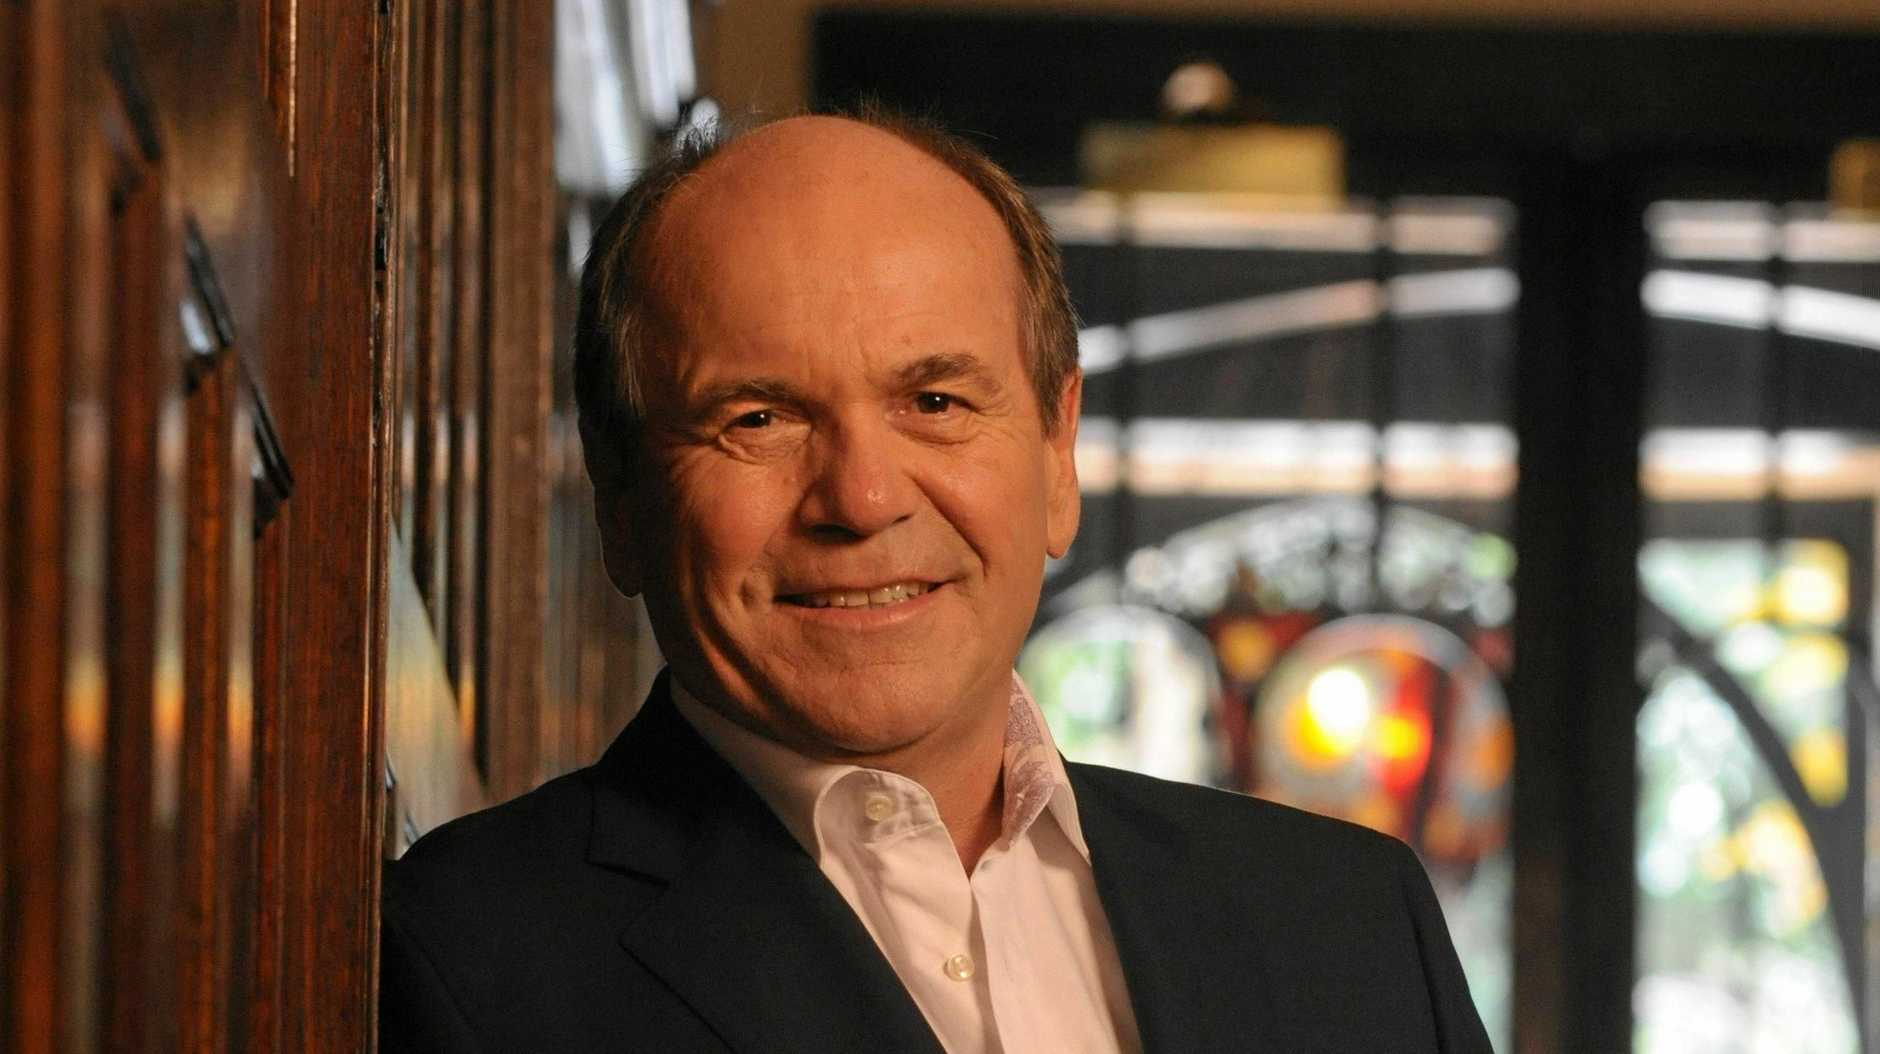 Former Little River Band frontman Glenn Shorrock's song 'Help Is On Its Way' will be used to inspire mental health awareness on his regional Queensland tour.